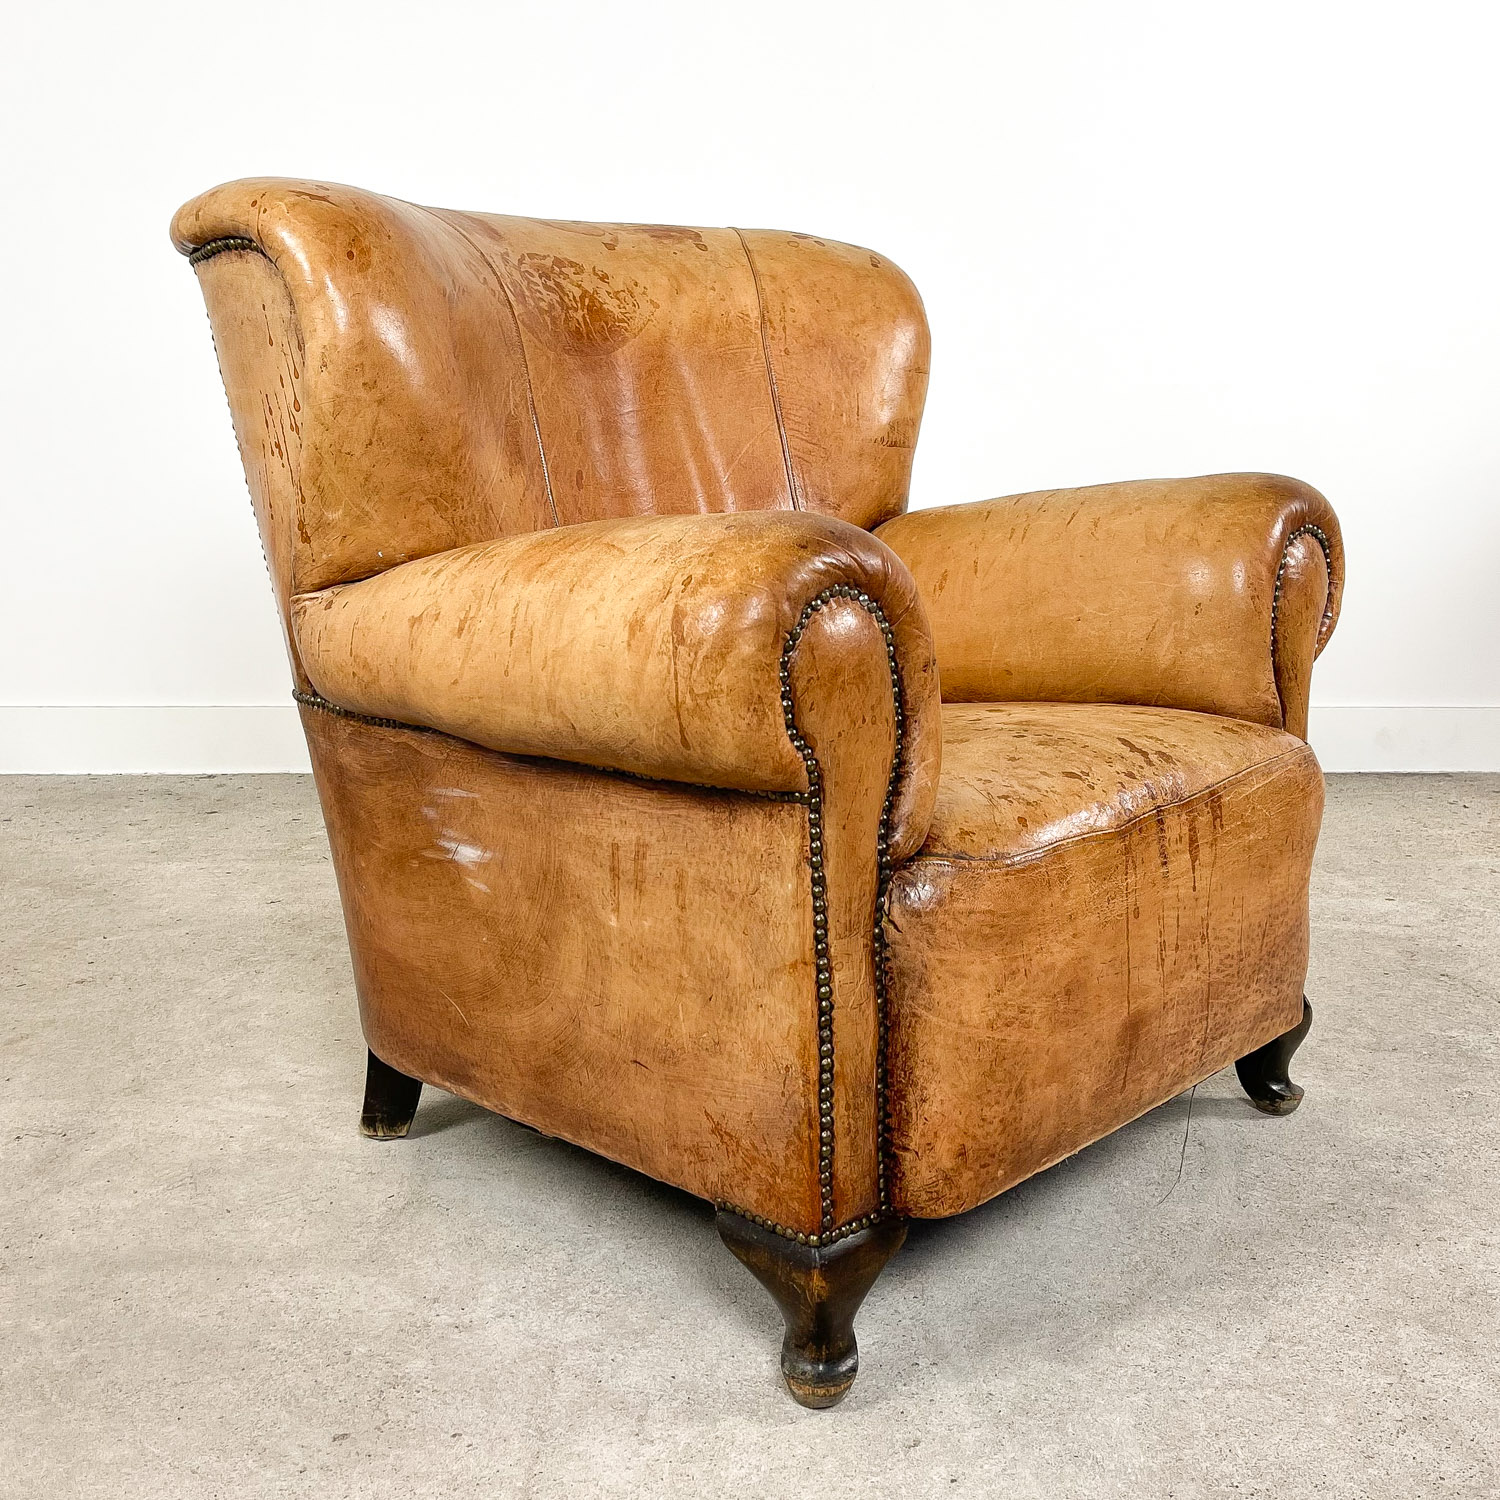 Antique cognac colored sheep leather armchair Big bertha